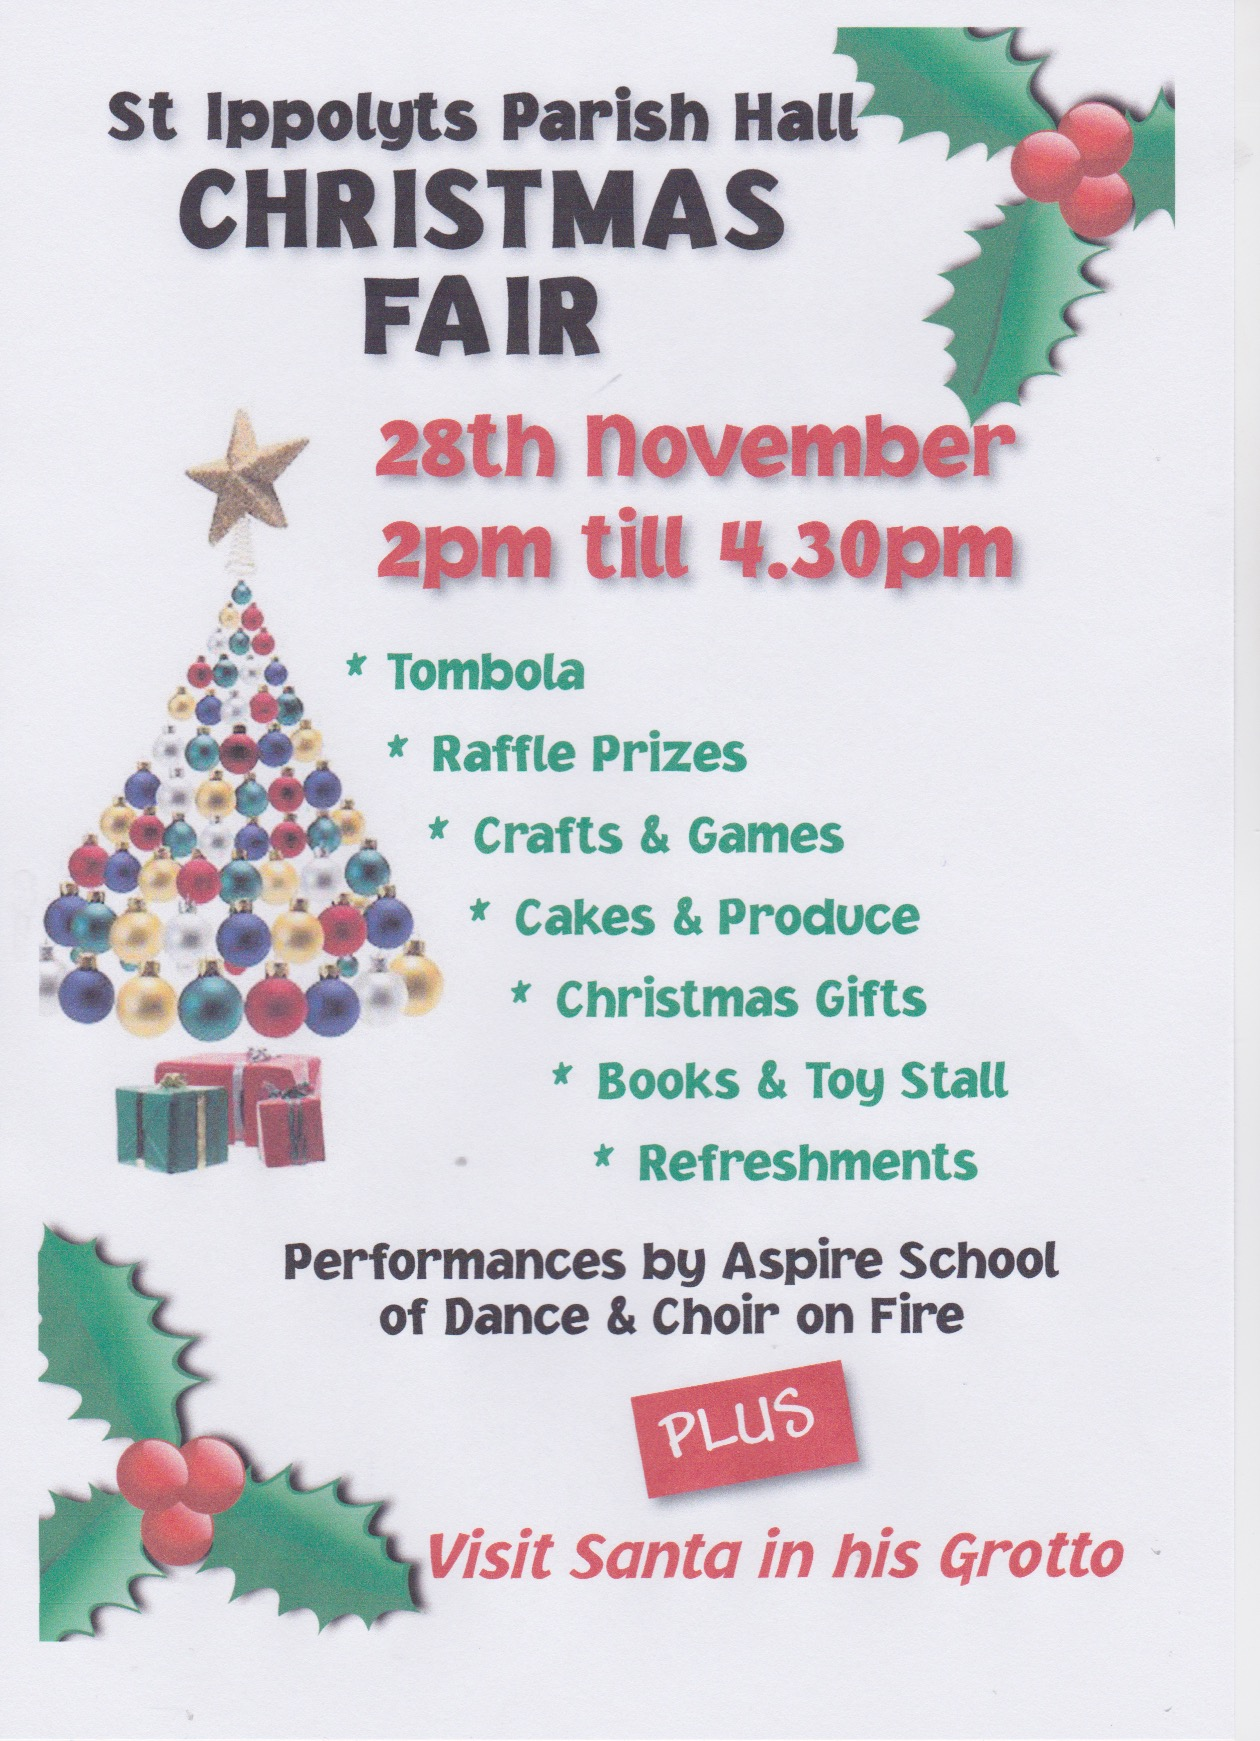 151105 St Ippolyts Parish Hall Christmas Fair Poster